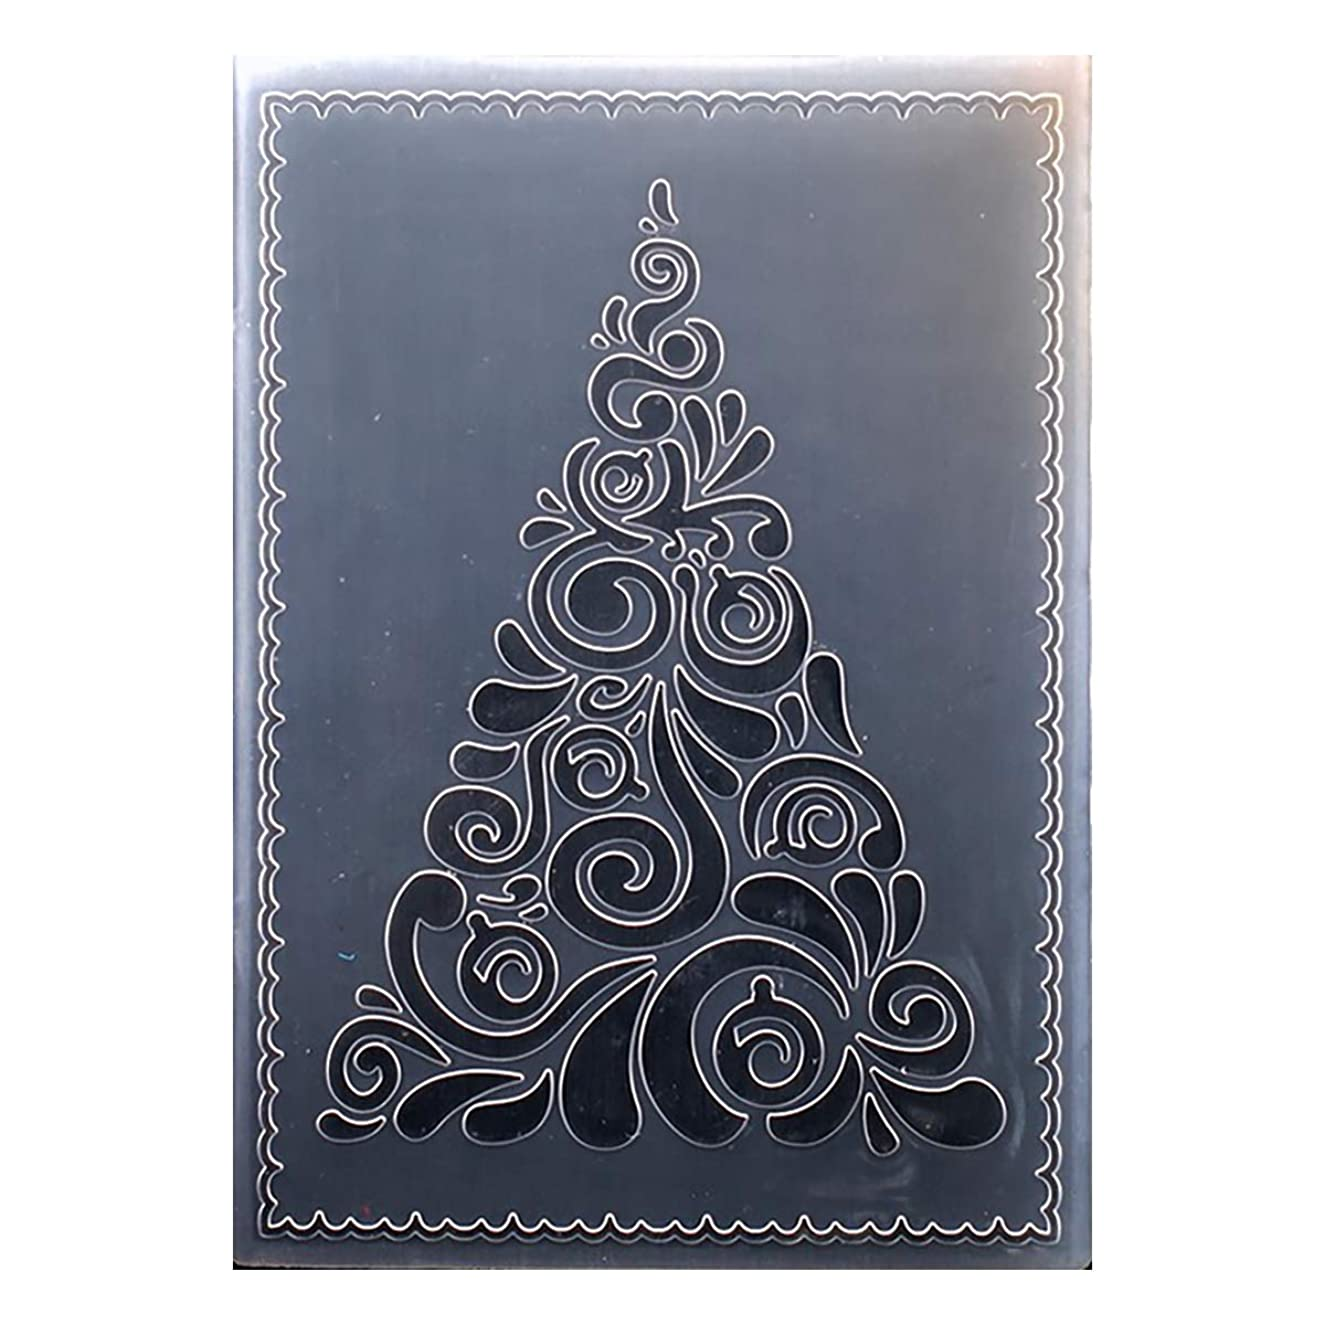 Kwan Crafts Merry Christmas Tree Plastic Embossing Folders for Card Making Scrapbooking and Other Paper Crafts, 12.5x17.7cm